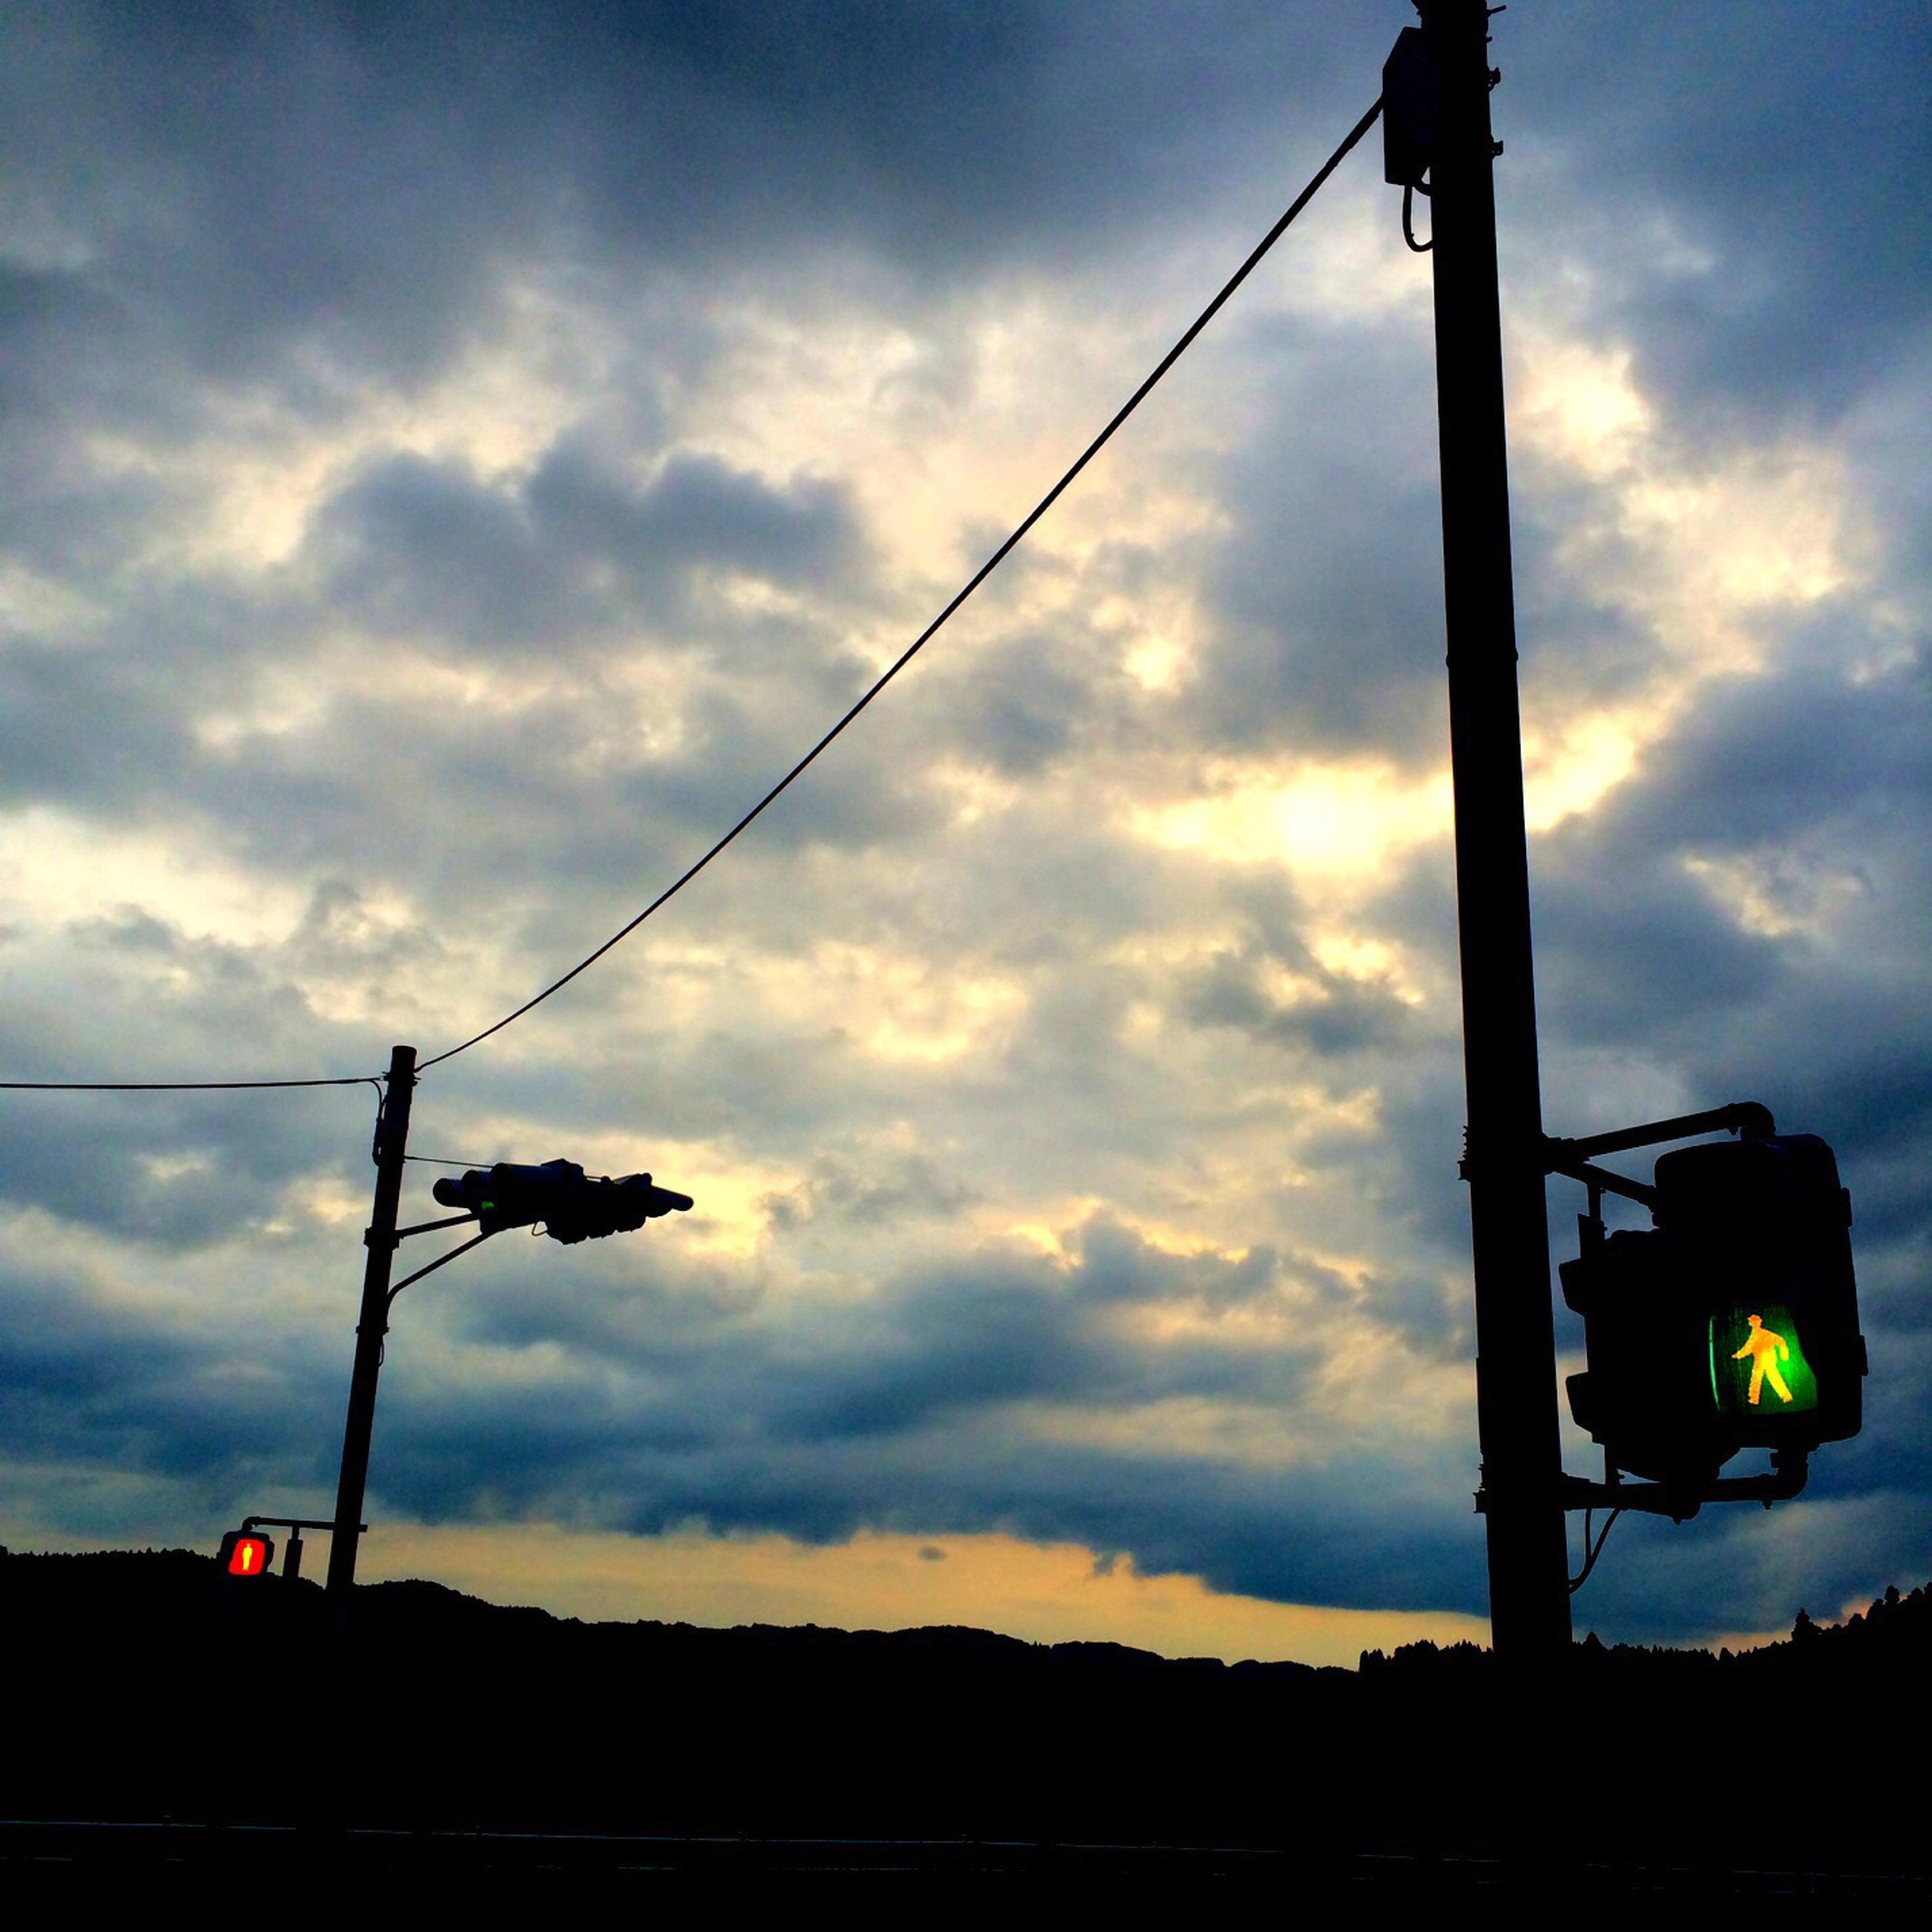 sky, silhouette, low angle view, cloud - sky, street light, sunset, lighting equipment, transportation, power line, electricity, cable, dusk, cloudy, cloud, technology, pole, mode of transport, illuminated, power supply, outdoors